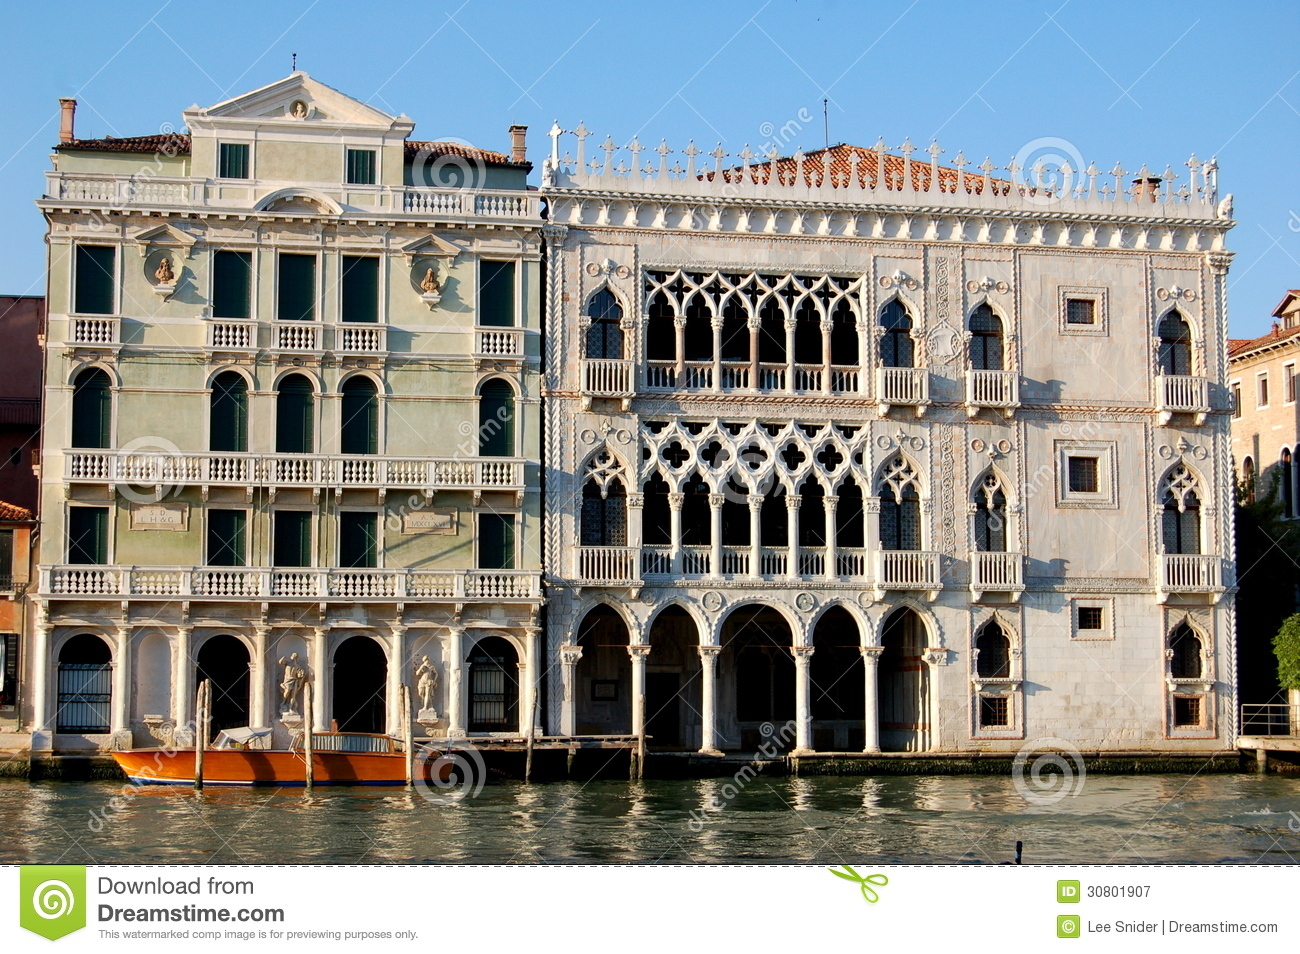 Venice, Italy: Palazzo Ca D'Oro Royalty Free Stock Photography - Image ...: www.dreamstime.com/royalty-free-stock-photography-venice-italy...